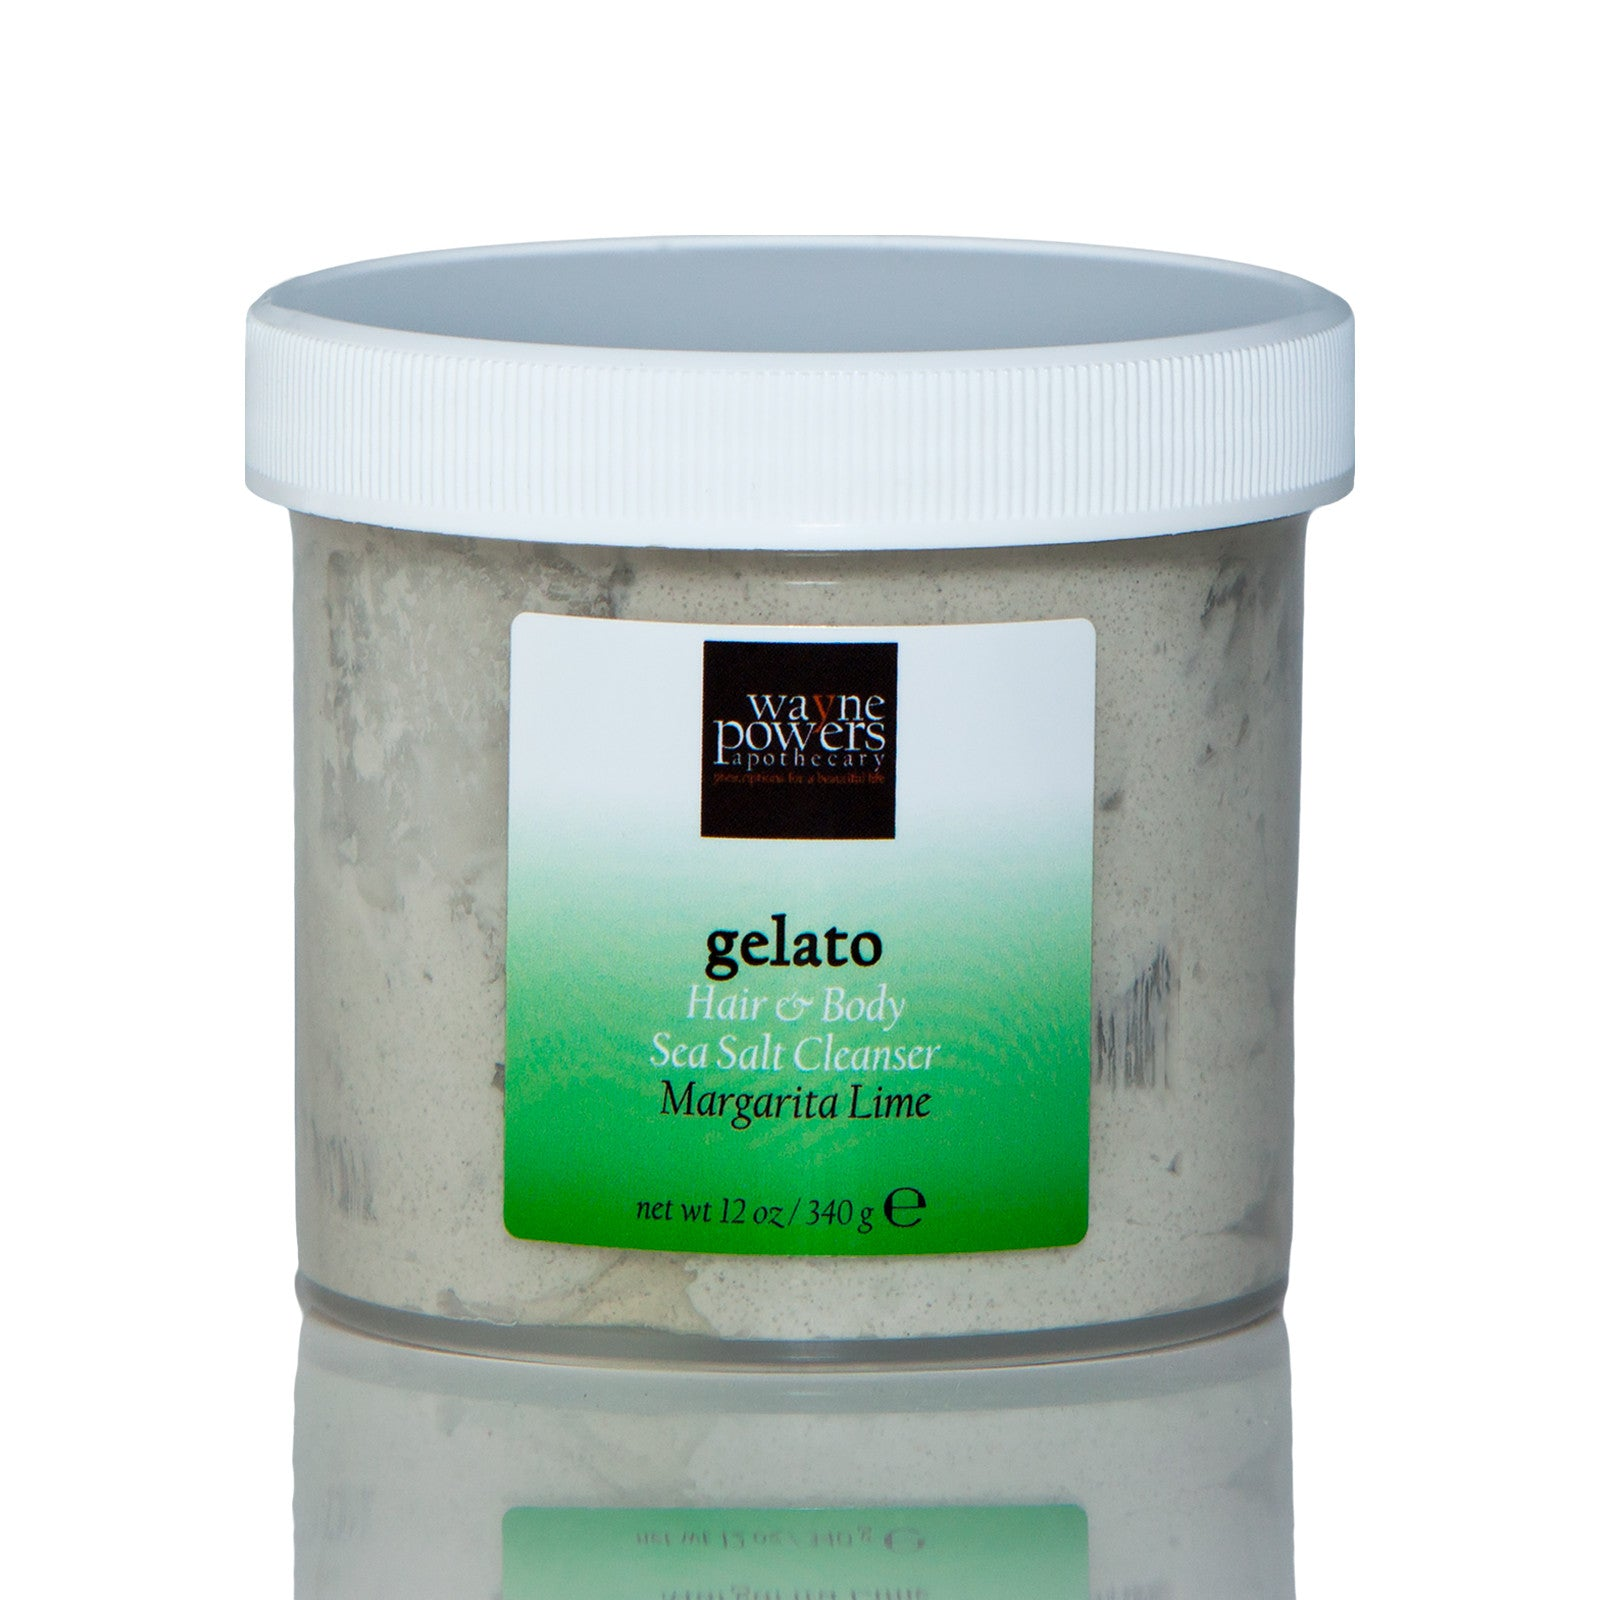 Gelato Maragrita Lime Hair & Skin Sea Salt Cleanser by Wayne Powers Apothecary